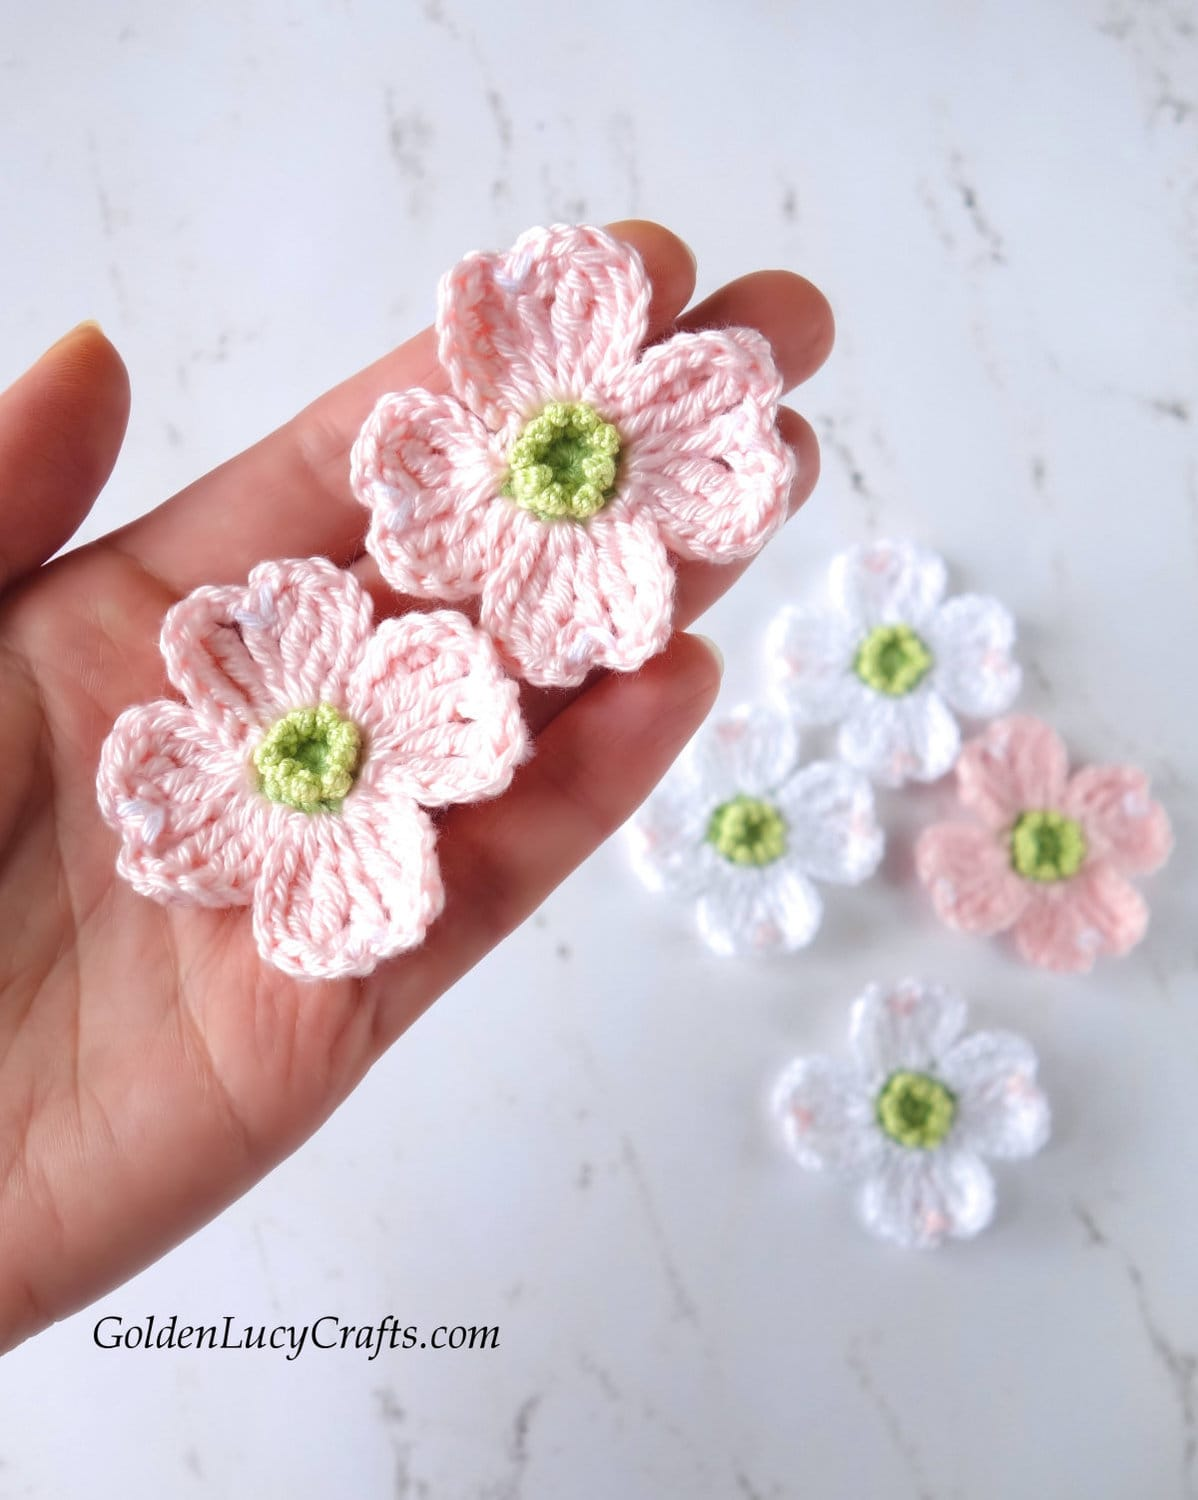 Crochet pink dogwood tree flowers in the palm of a hand.